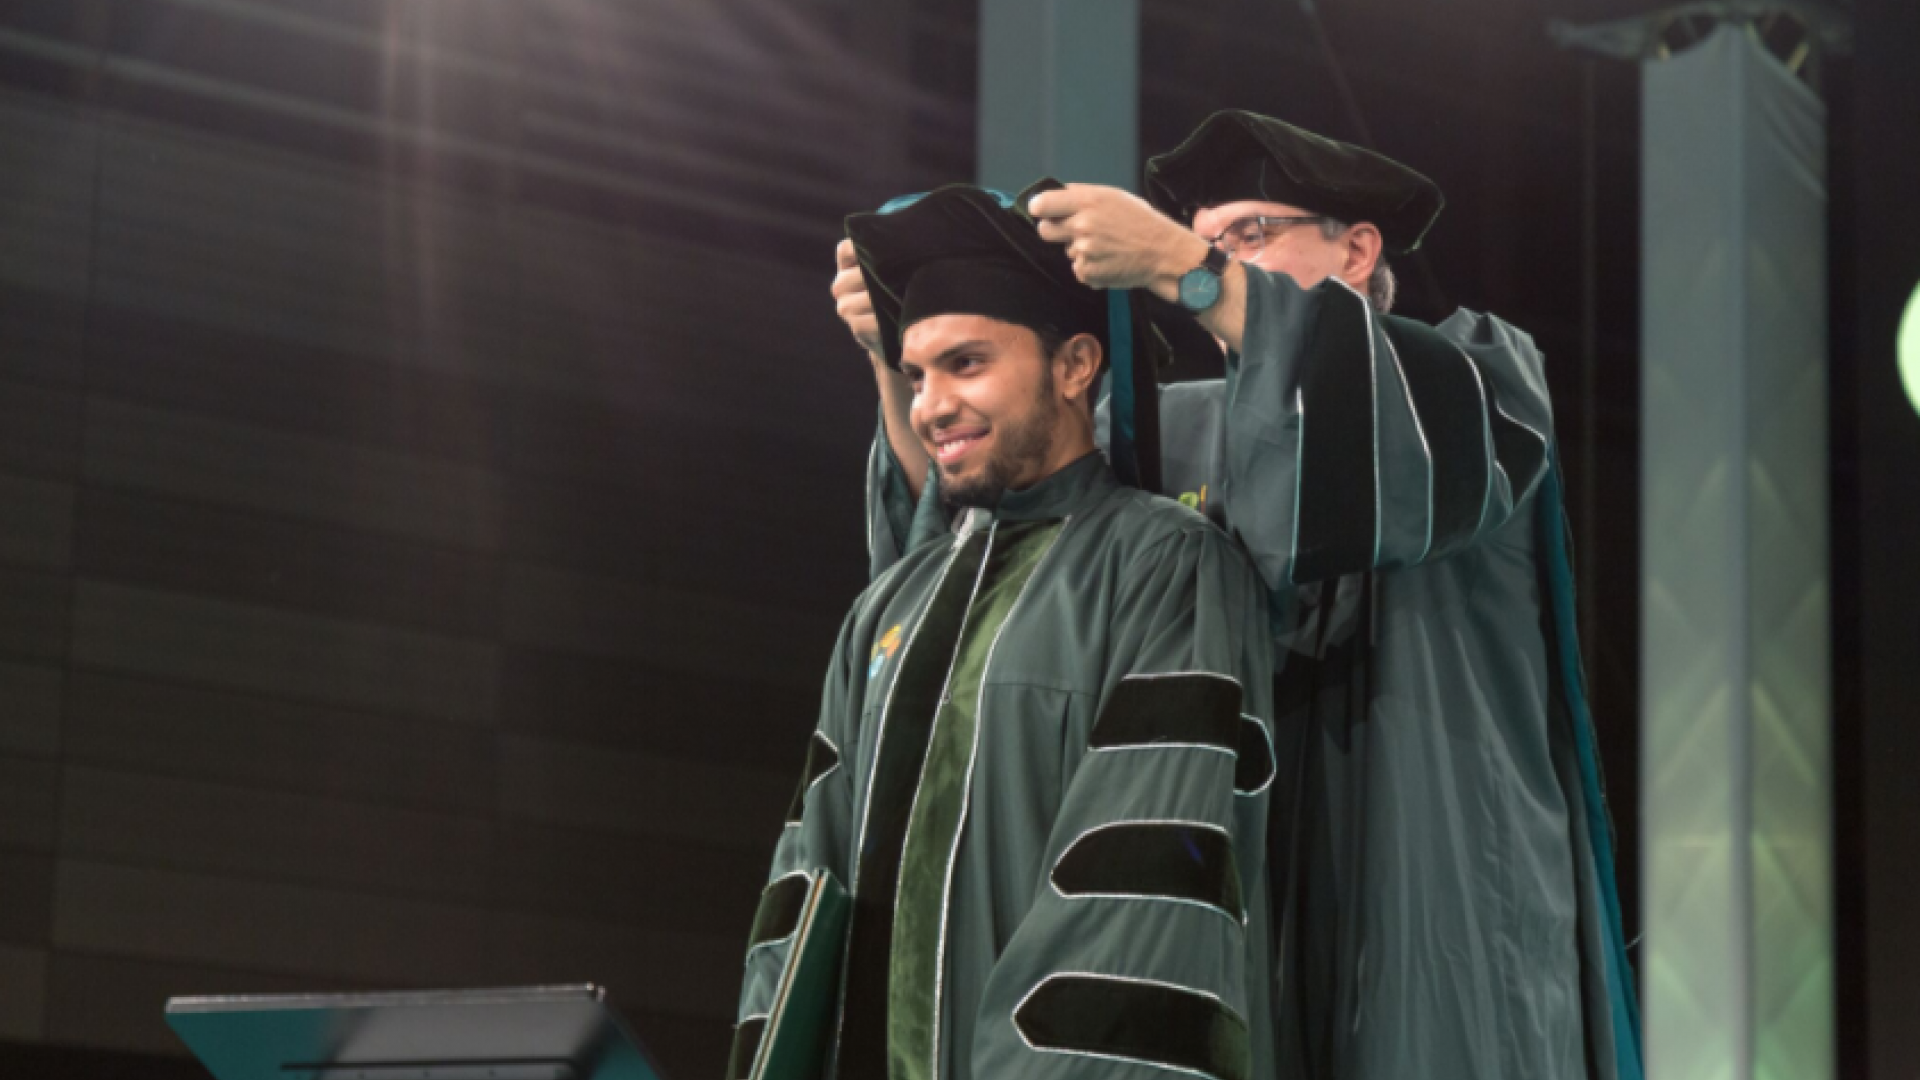 Professor Alouini awarding the Doctoral Hood to Lokman Sboui during his graduation